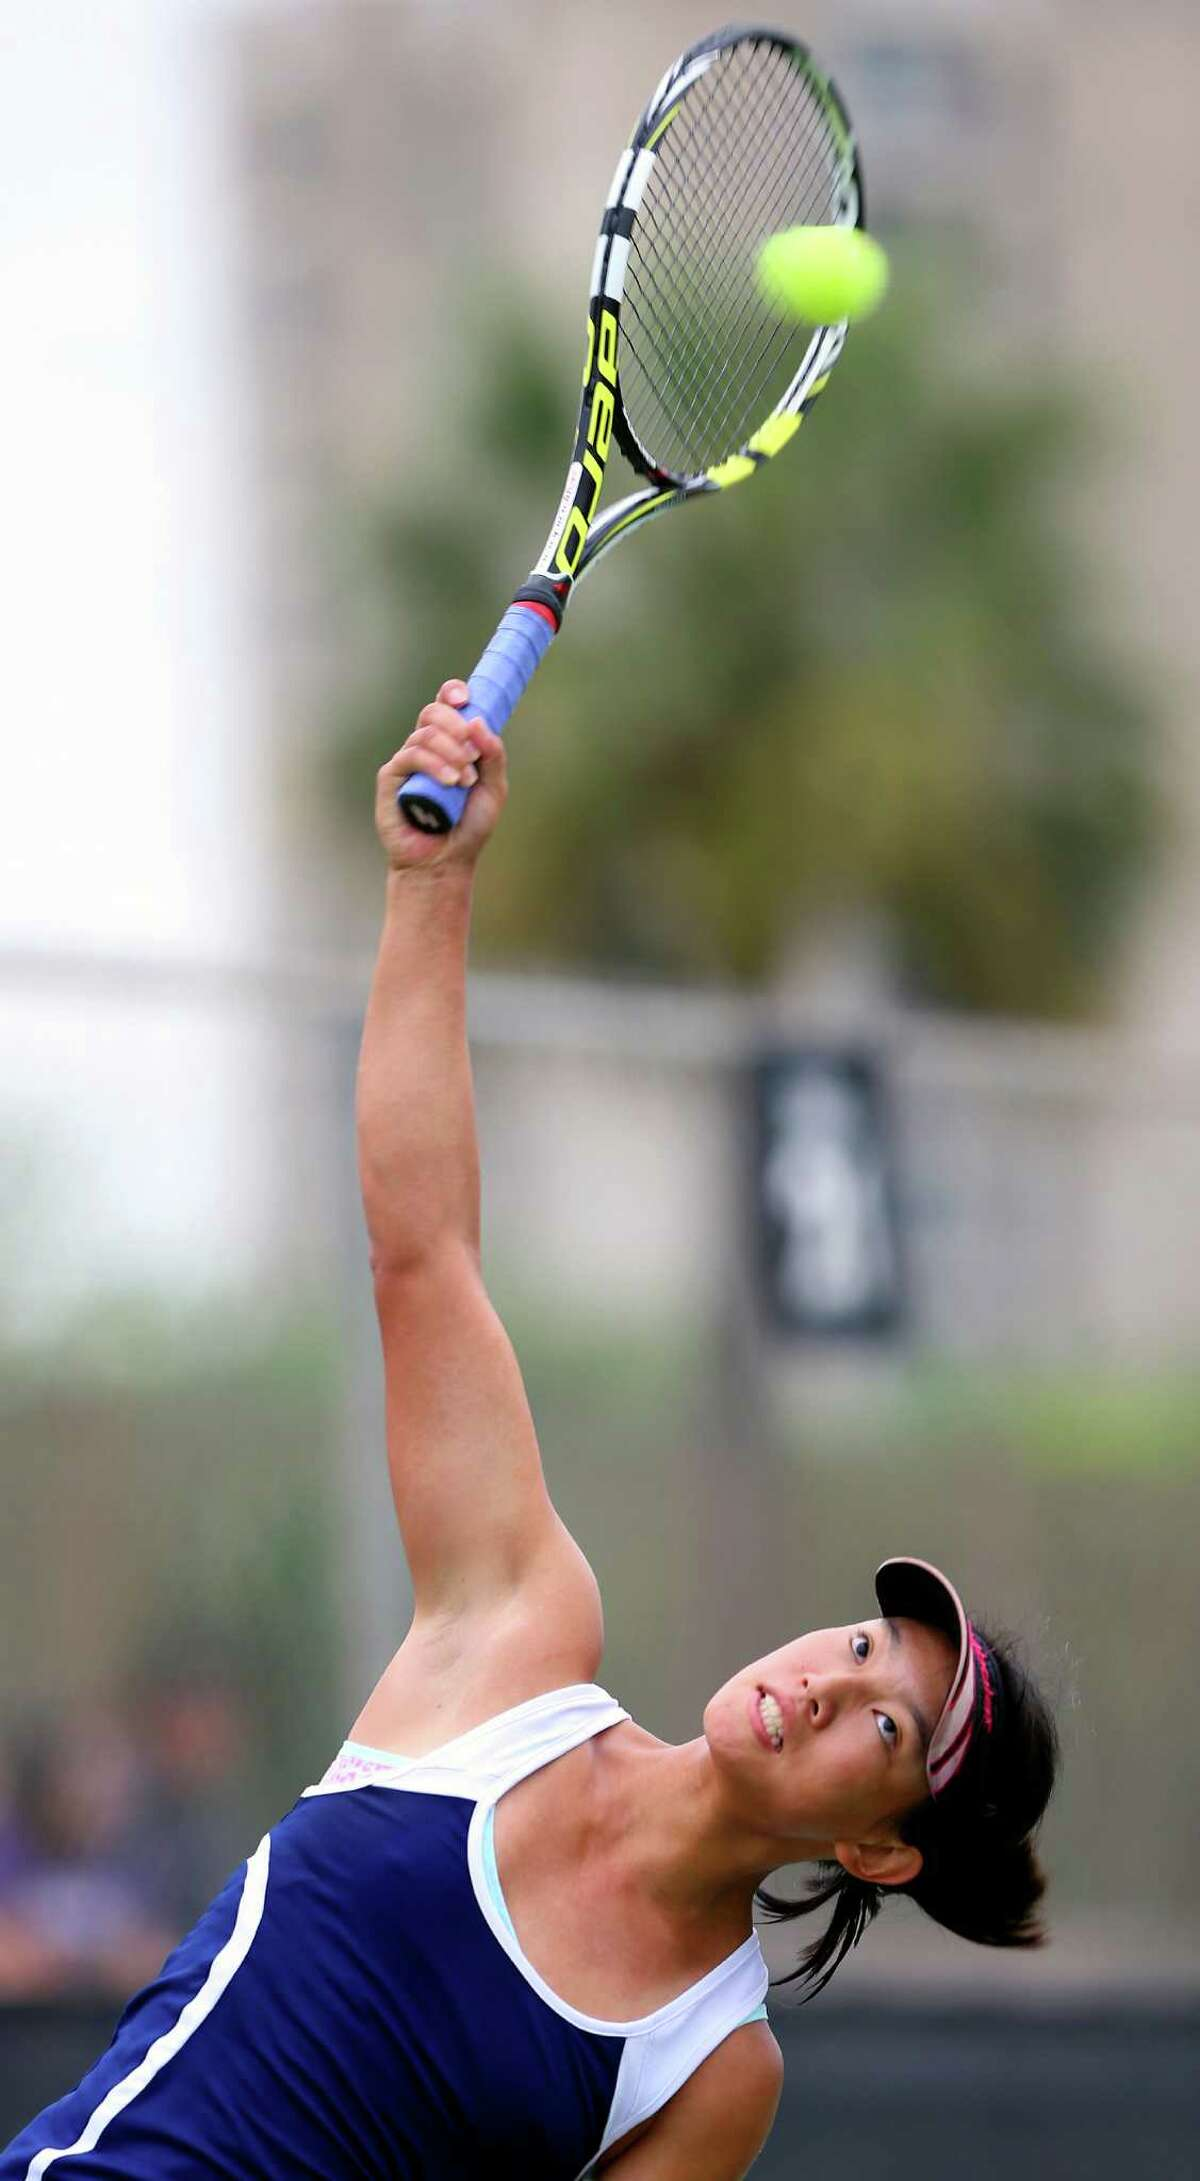 Chuyang Guan competes Wednesday April 22, 2015 at the McFarland Tennis Center in the Region IV-6A tennis tournament. She won her match against Beatriz Benavides 6-0, 6-3.